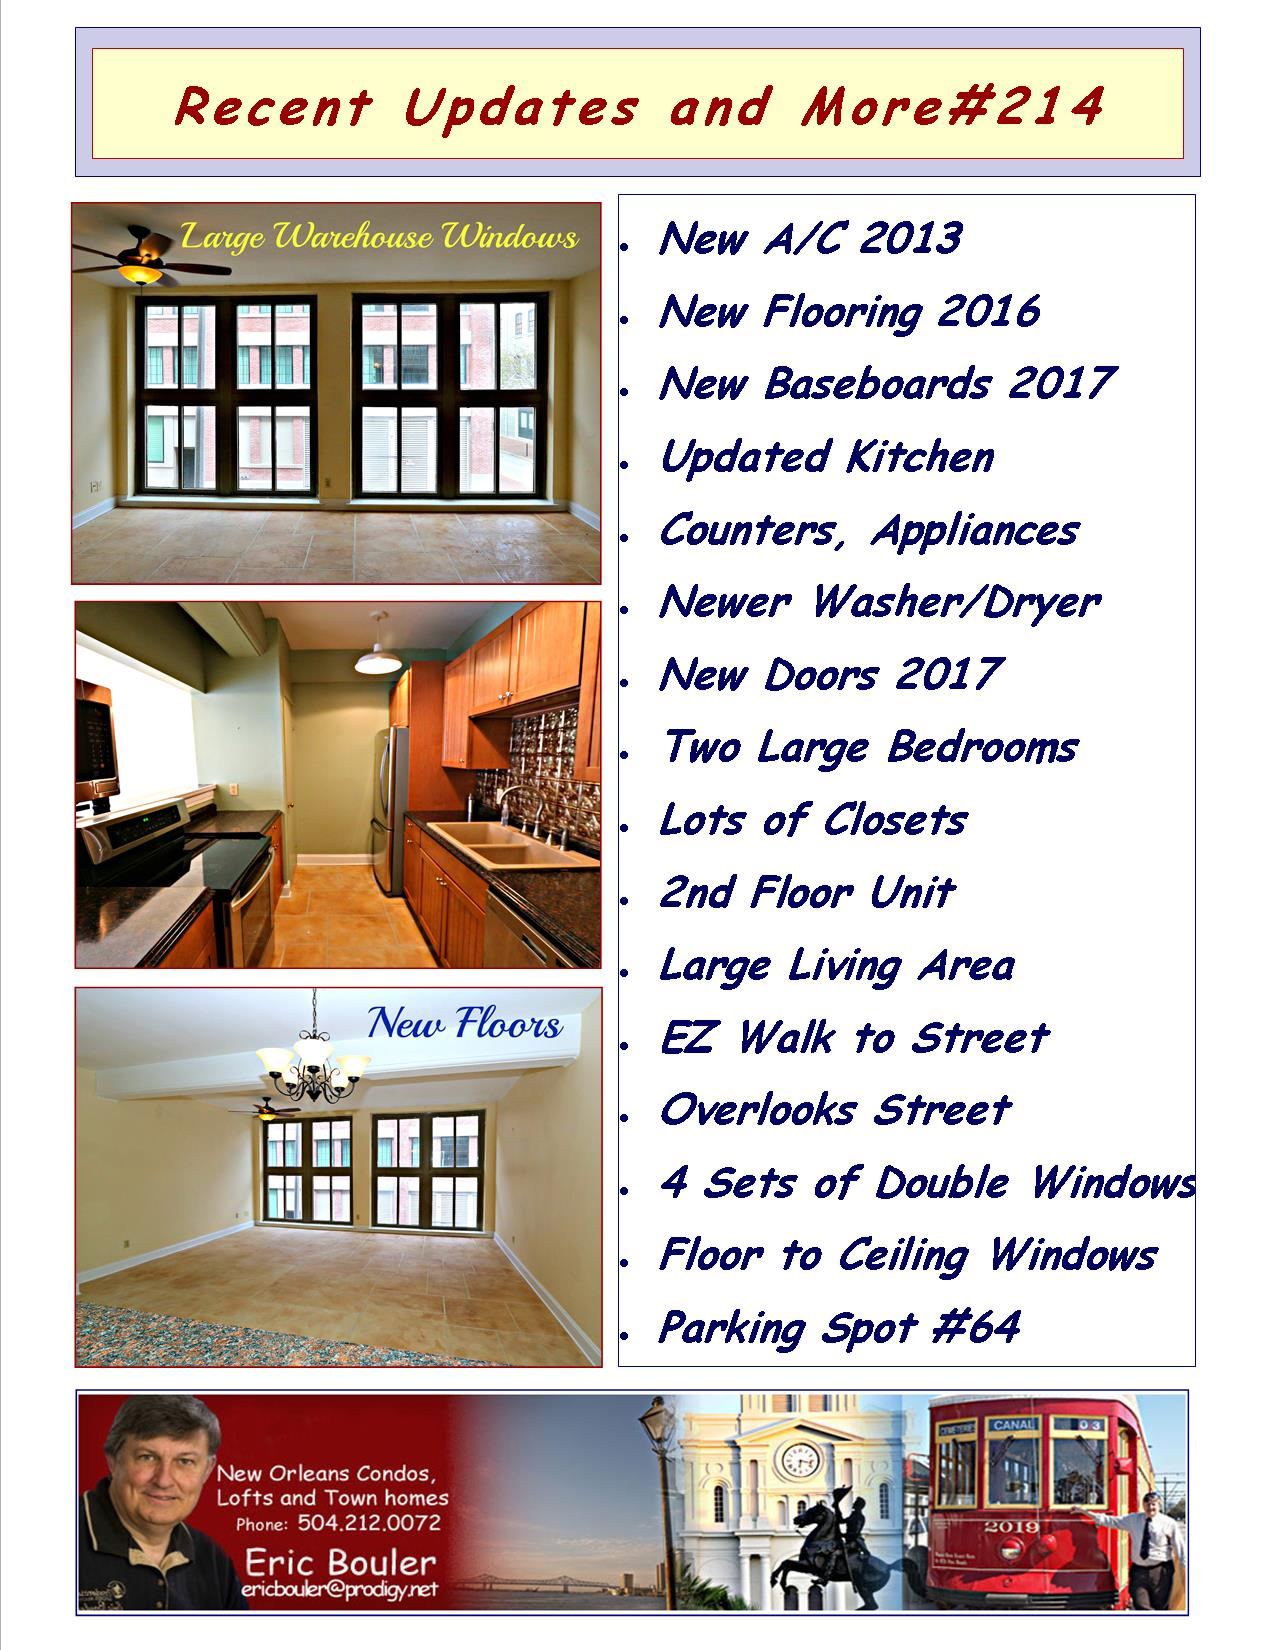 New Olreans Condos, A List of Updates